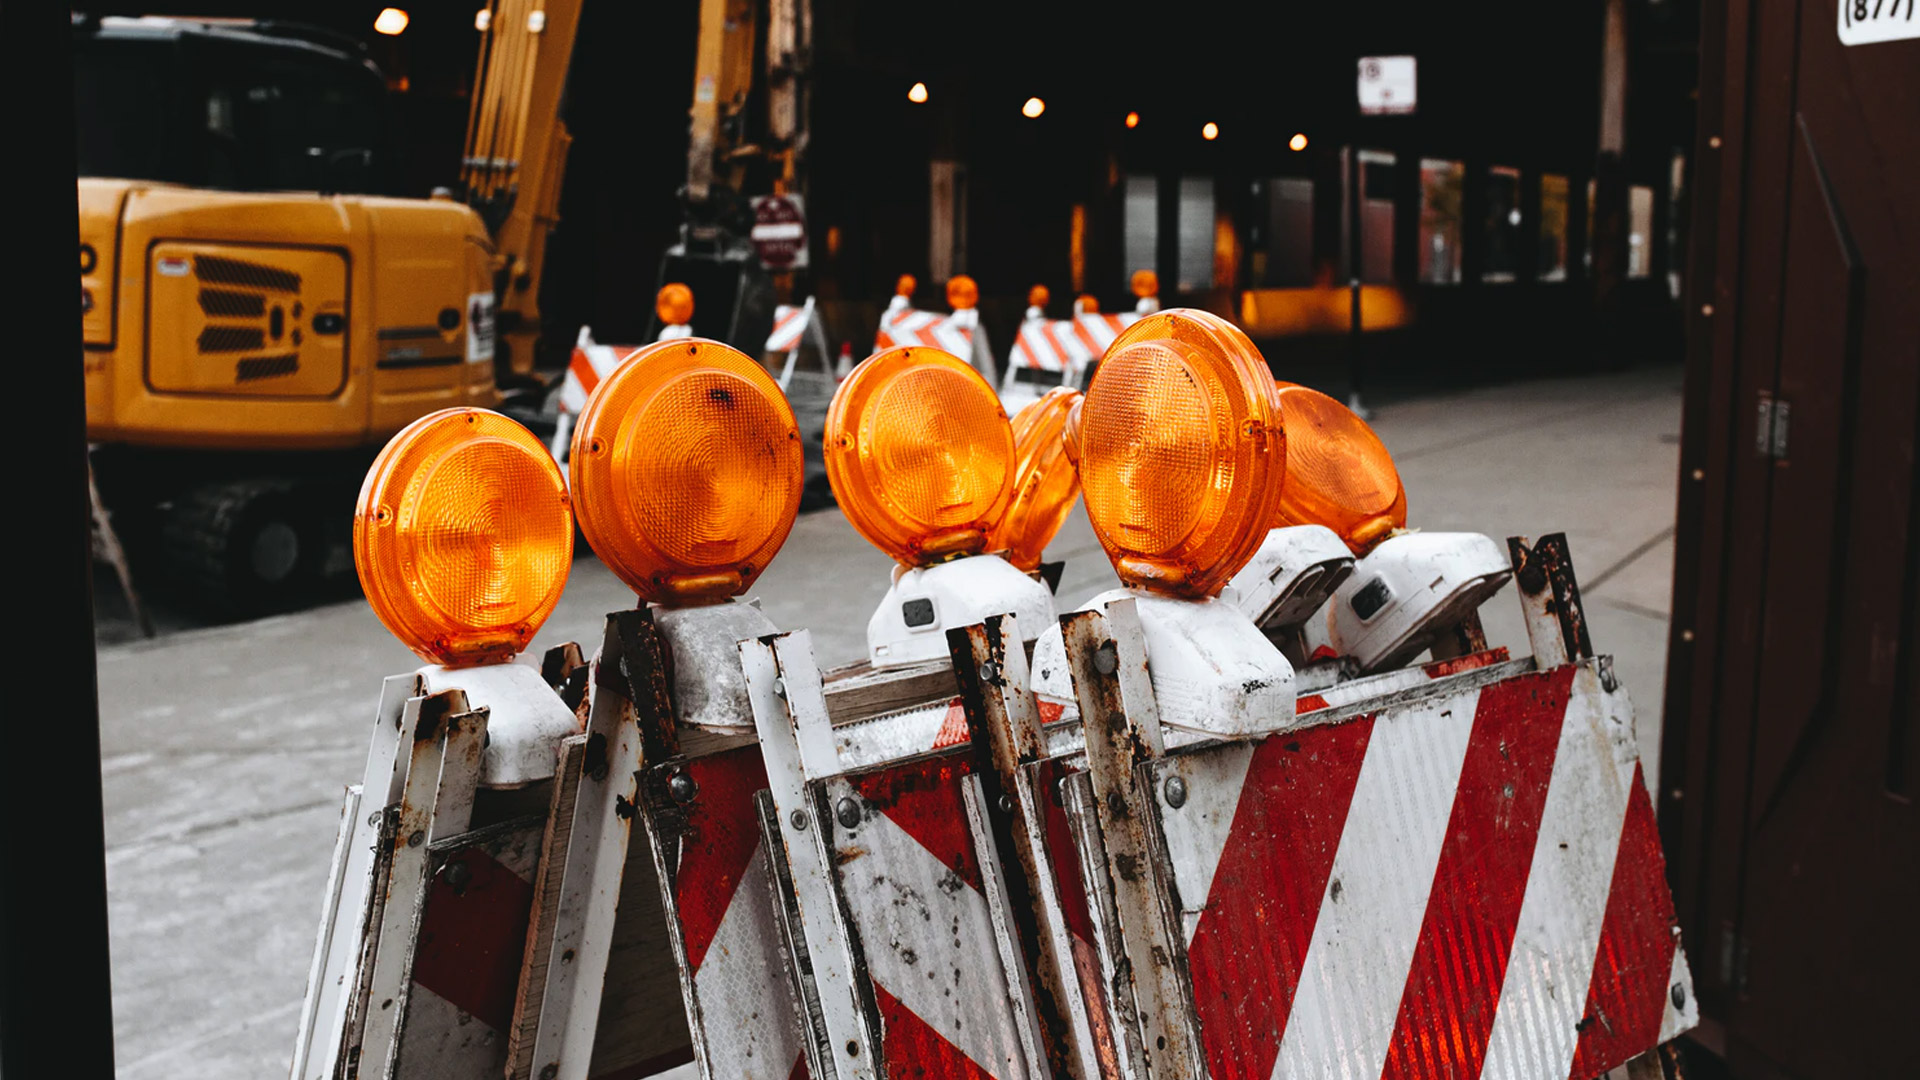 Planning for Event Safety